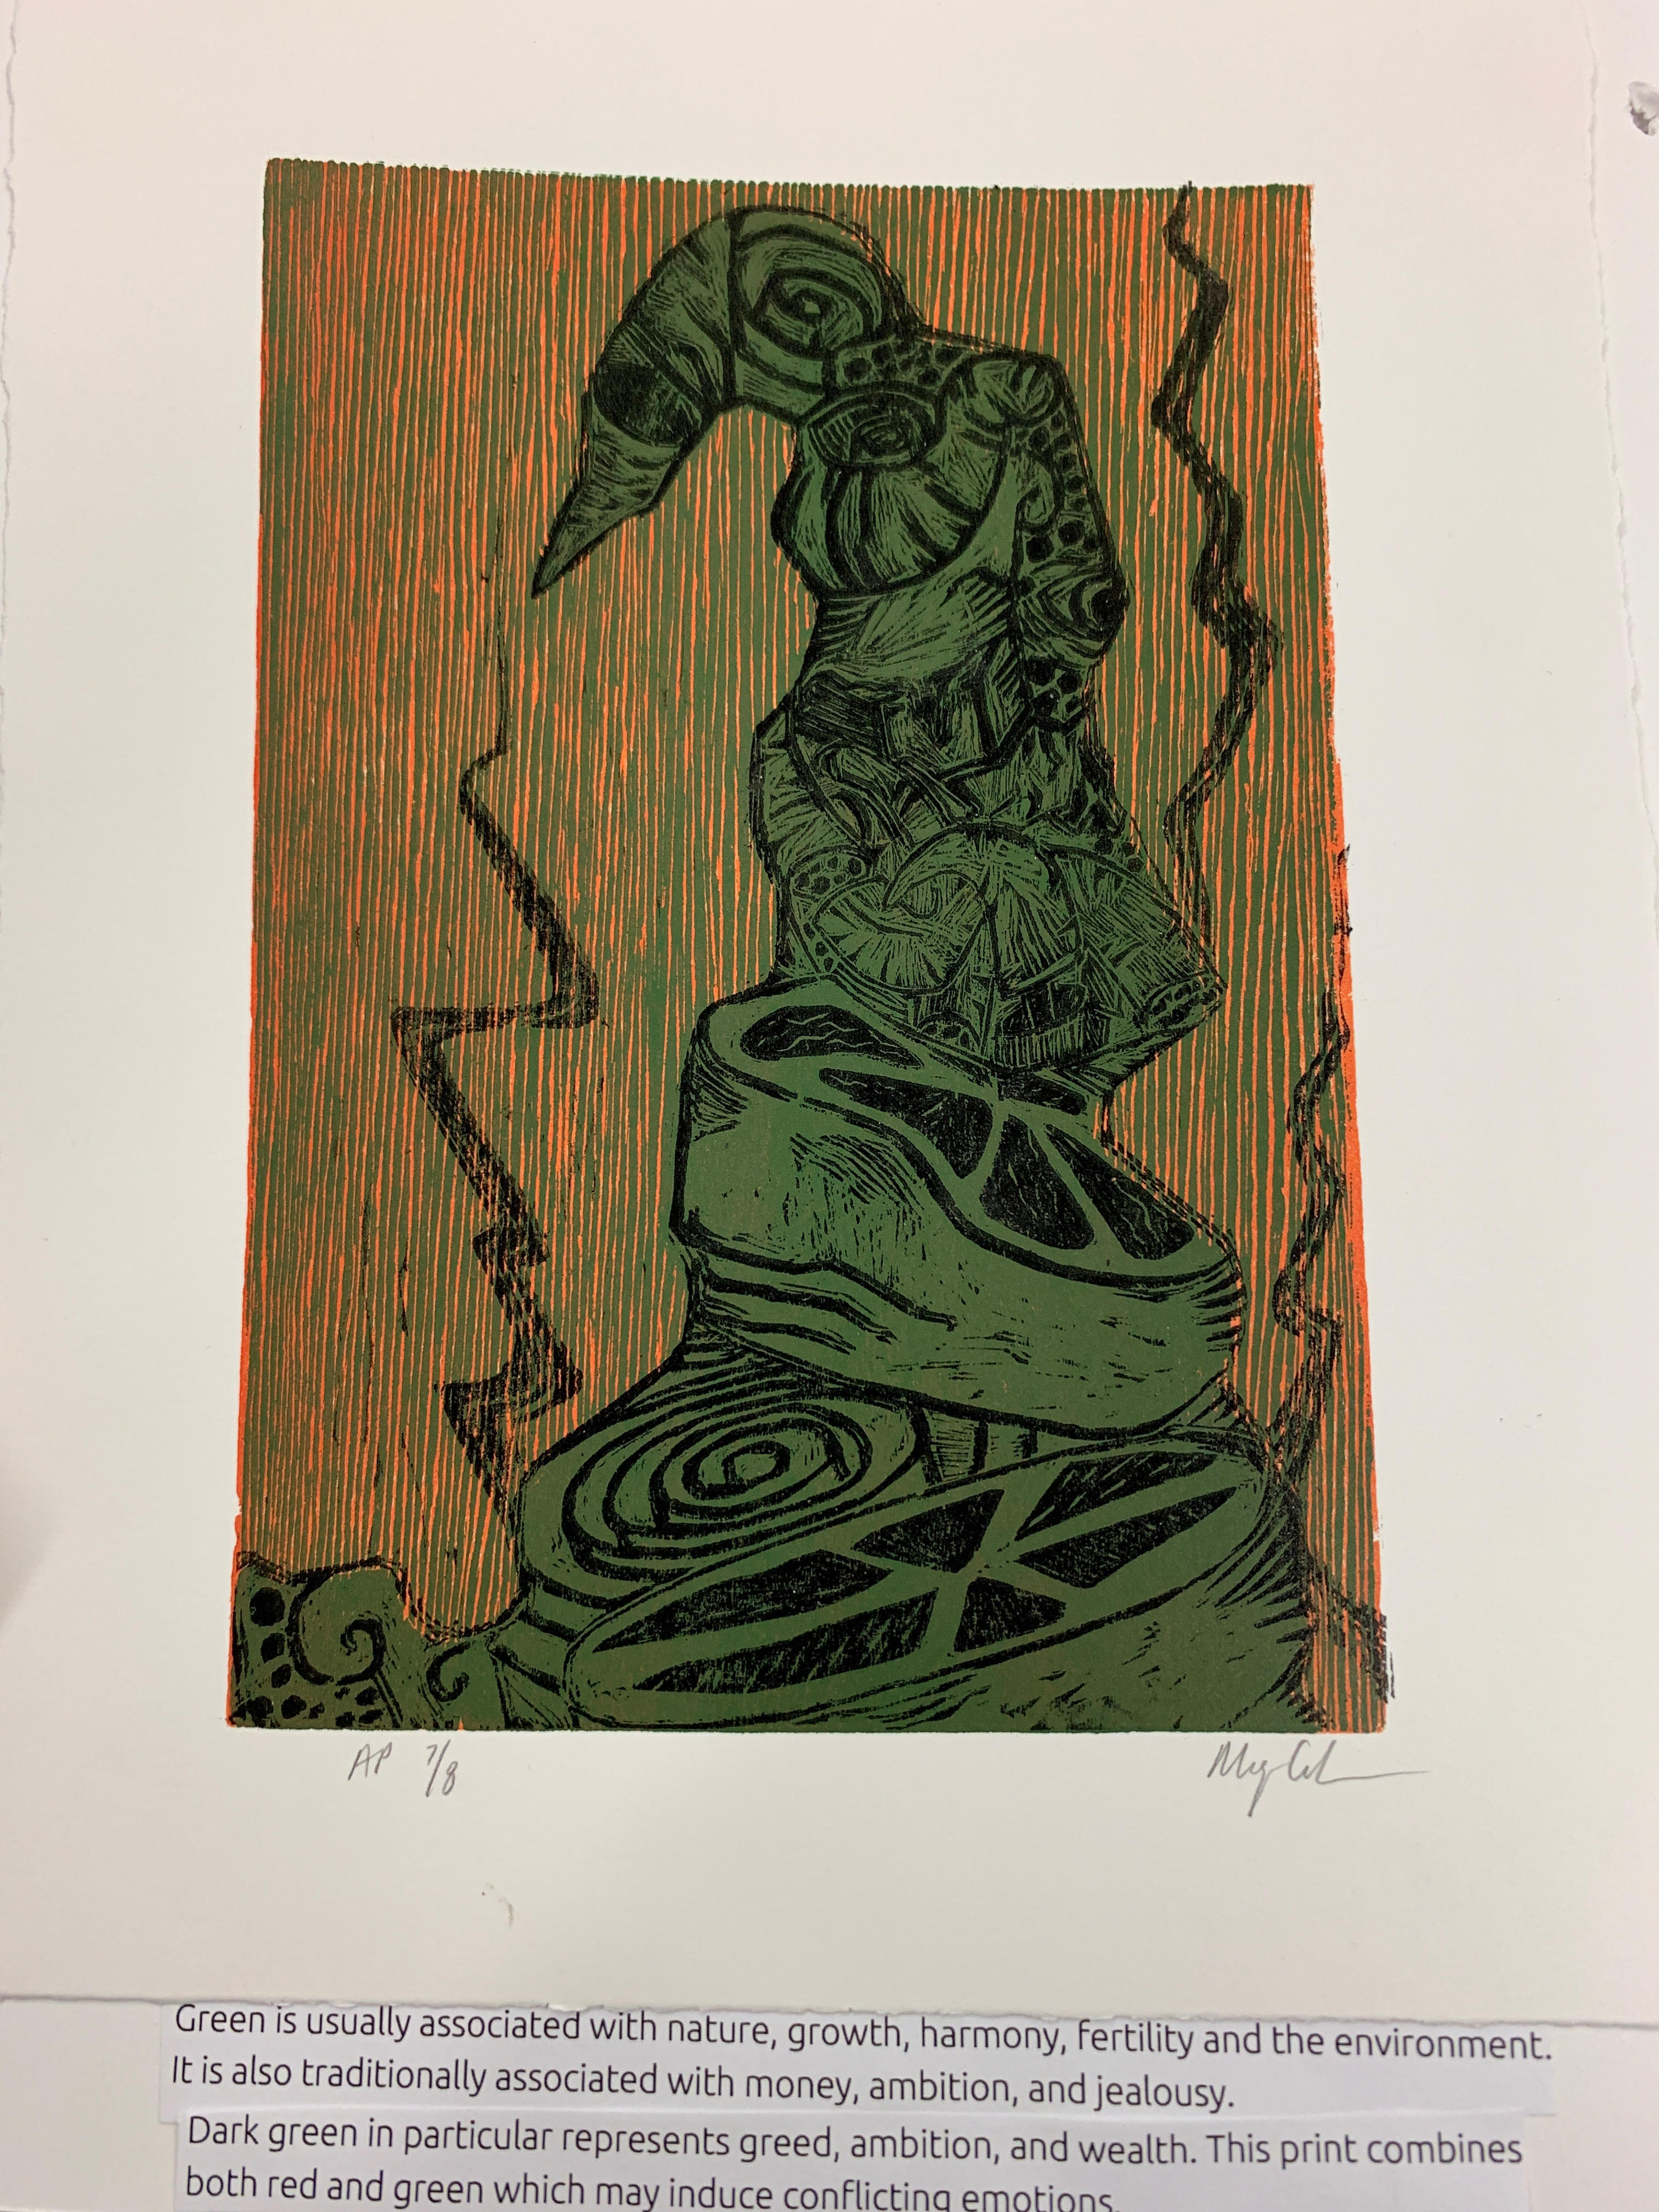 Page 5. Caption: In American society, green is typically associated with nature, growth, harmony, fertility, and the environment. It also signifies money, ambition and jealousy. The dark green presented in this abstract print is associated with greed, wealth, and ambition. The background usage of red with the predominant dark green may cause a calming and warming affect.